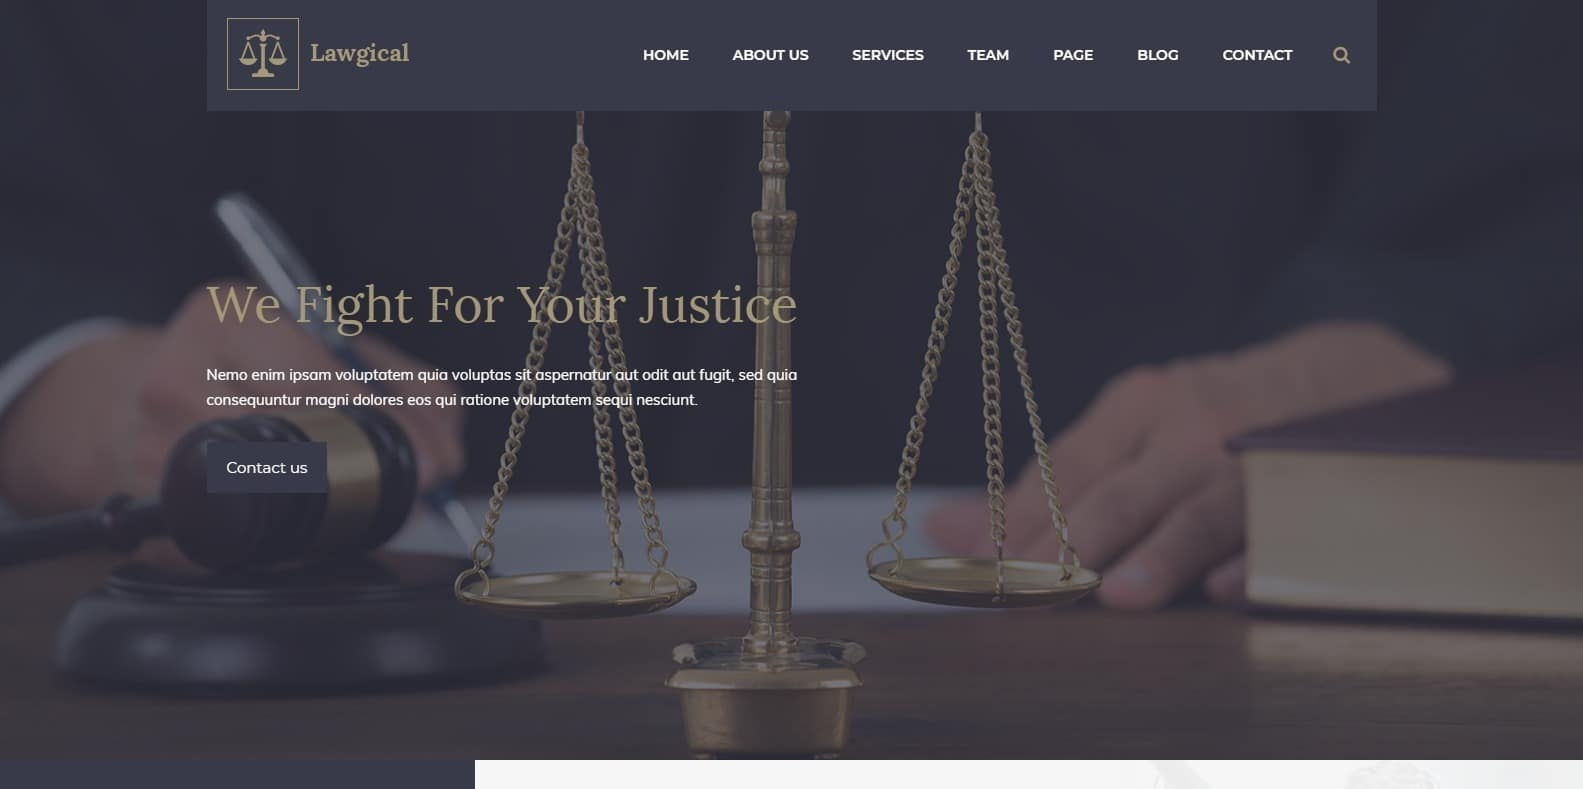 lawgical-attorney-website-template